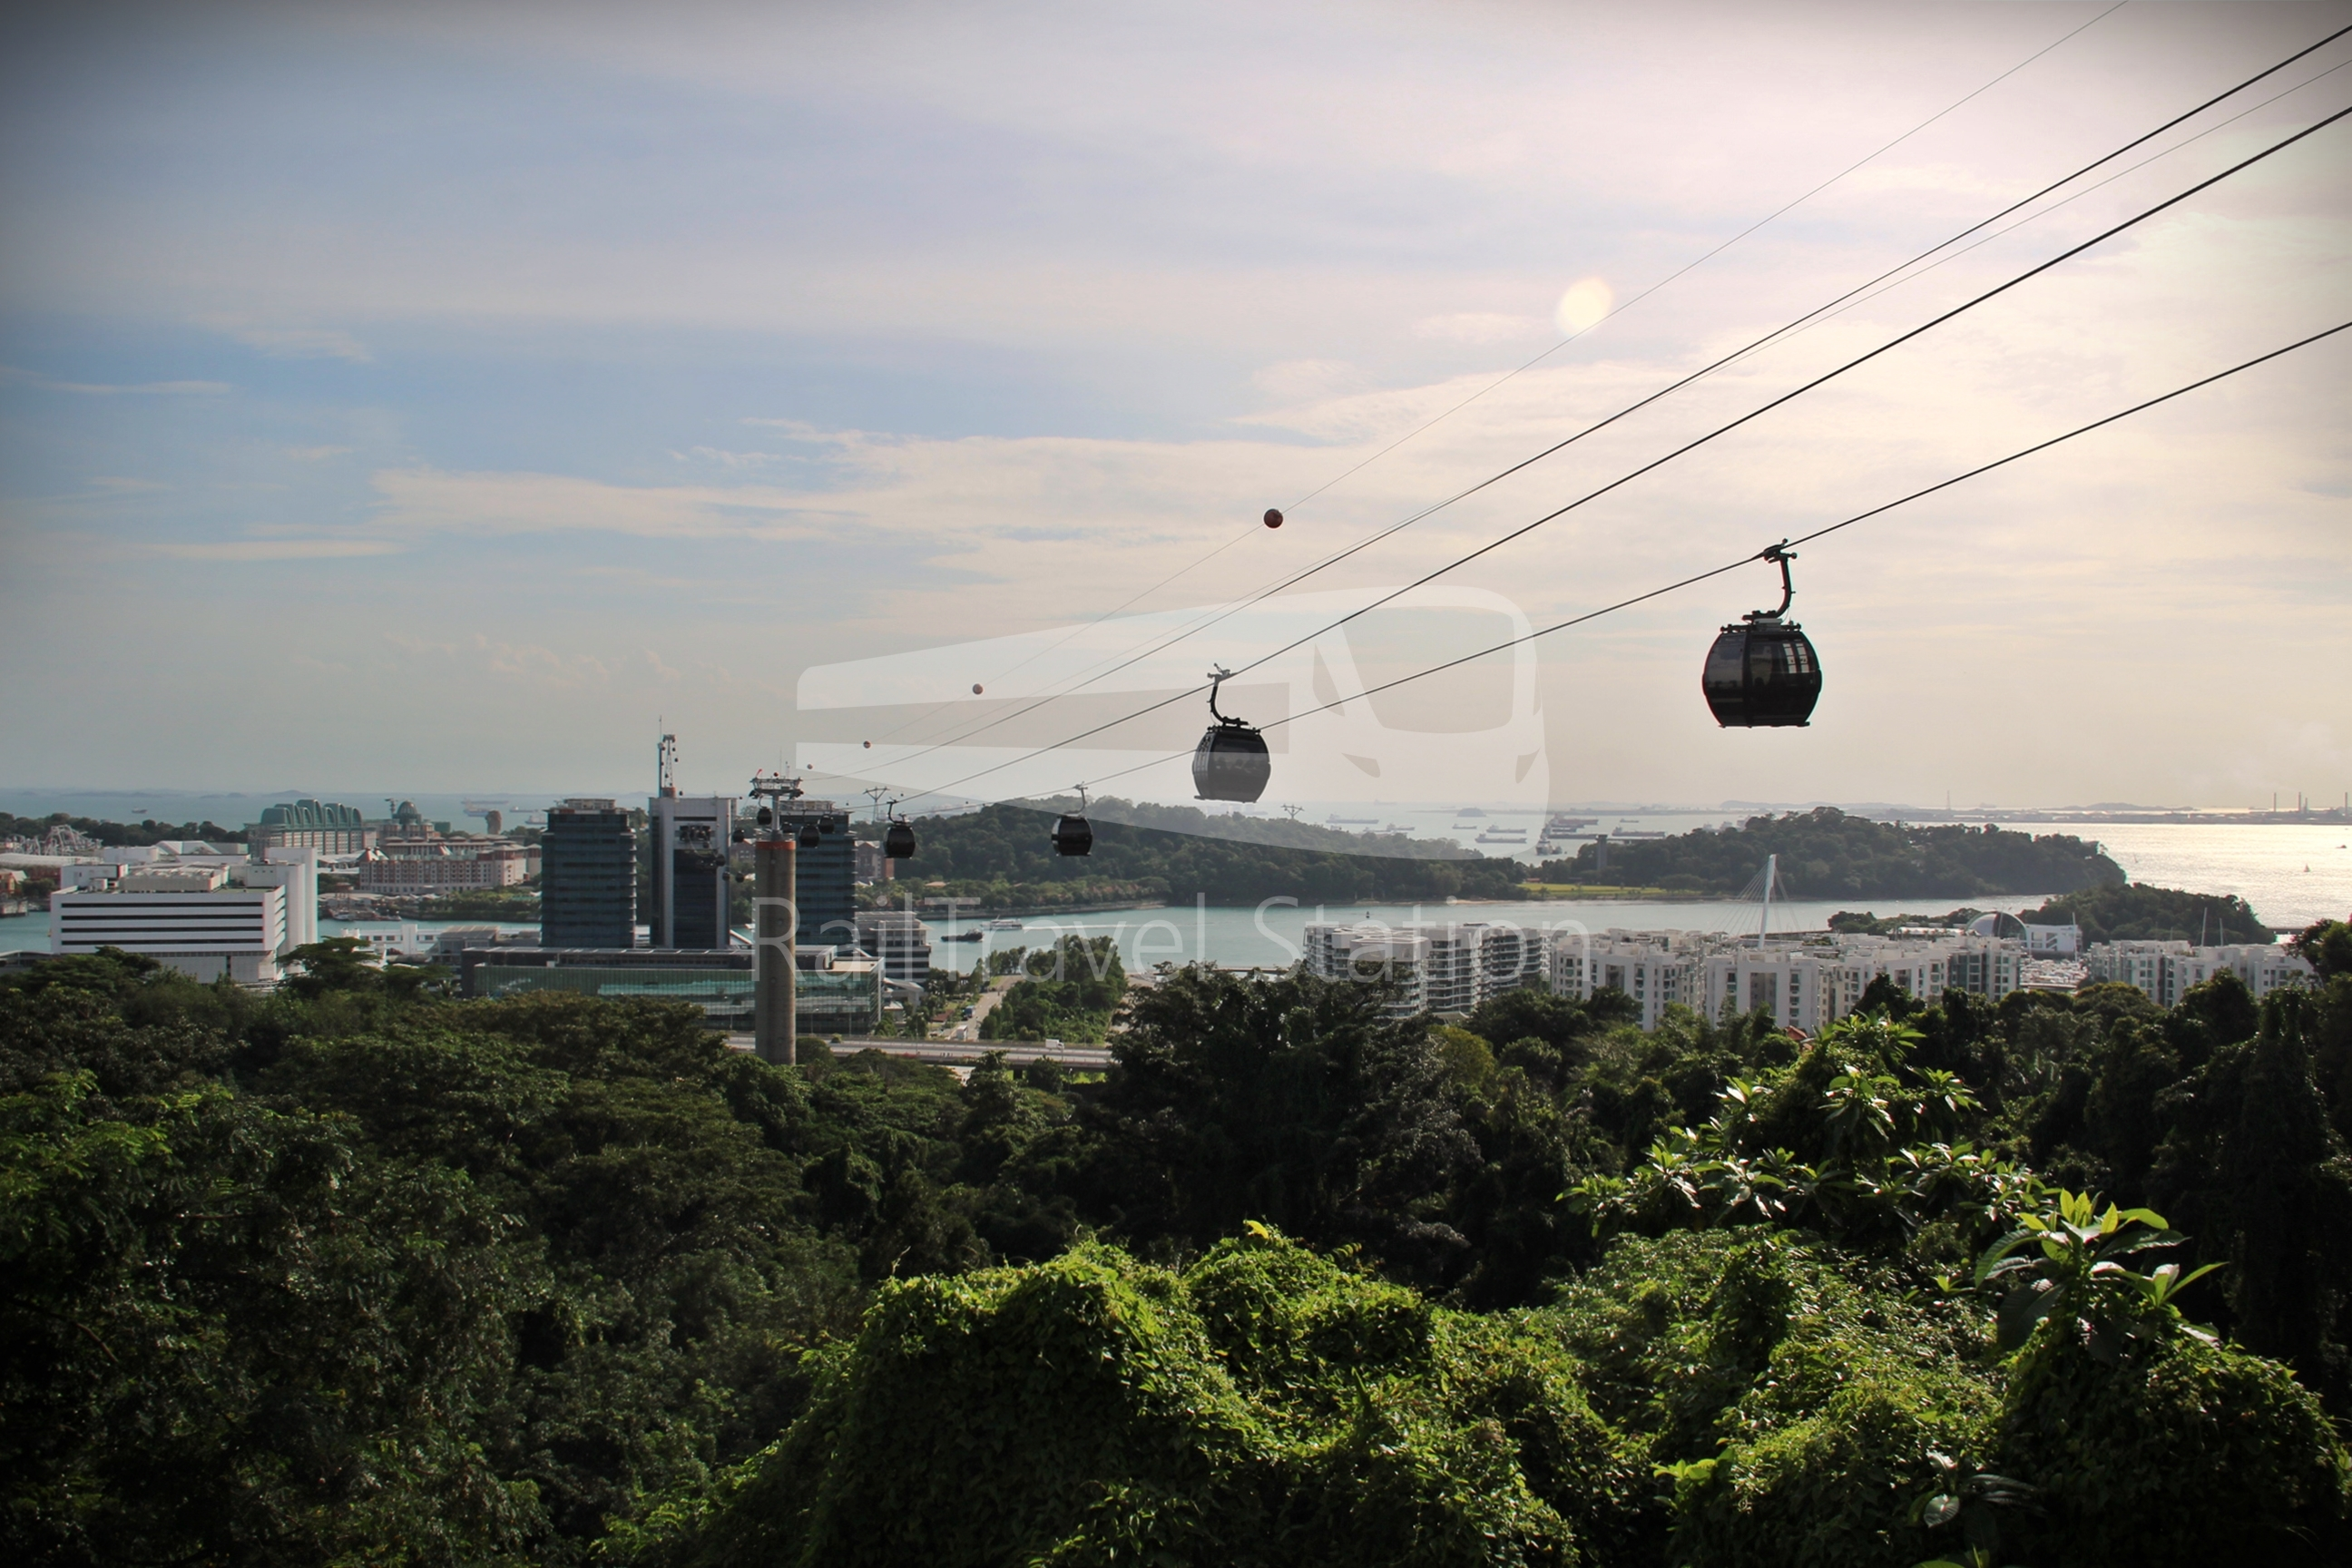 Singapore Cable Car Mount Faber Line: The Cross-Harbour Cable Car Line linking Mount Faber, HarbourFront and Sentosa Island